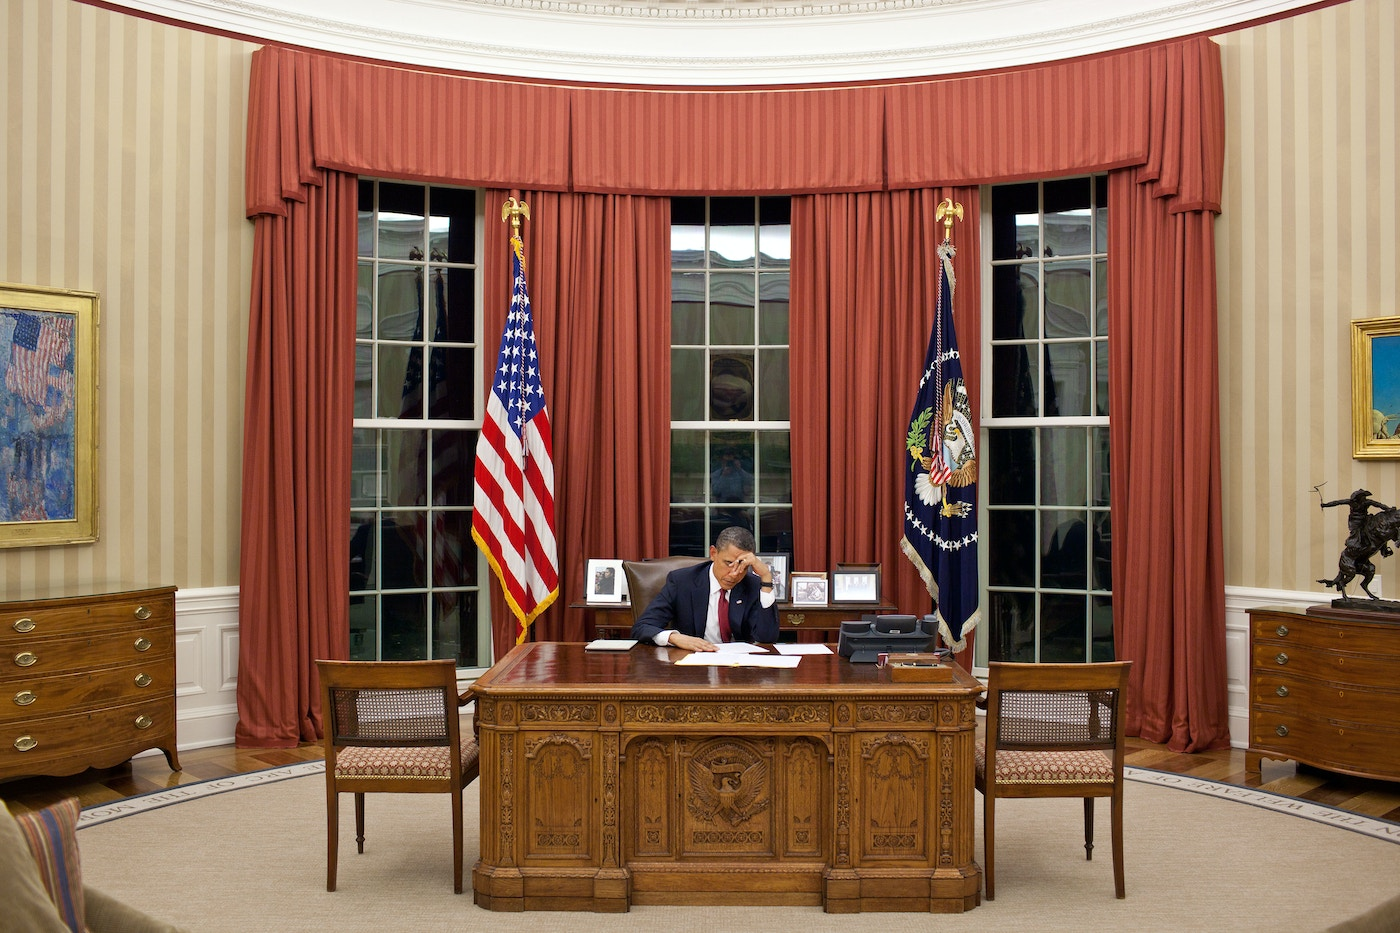 A Quiet Moment in the Oval Office